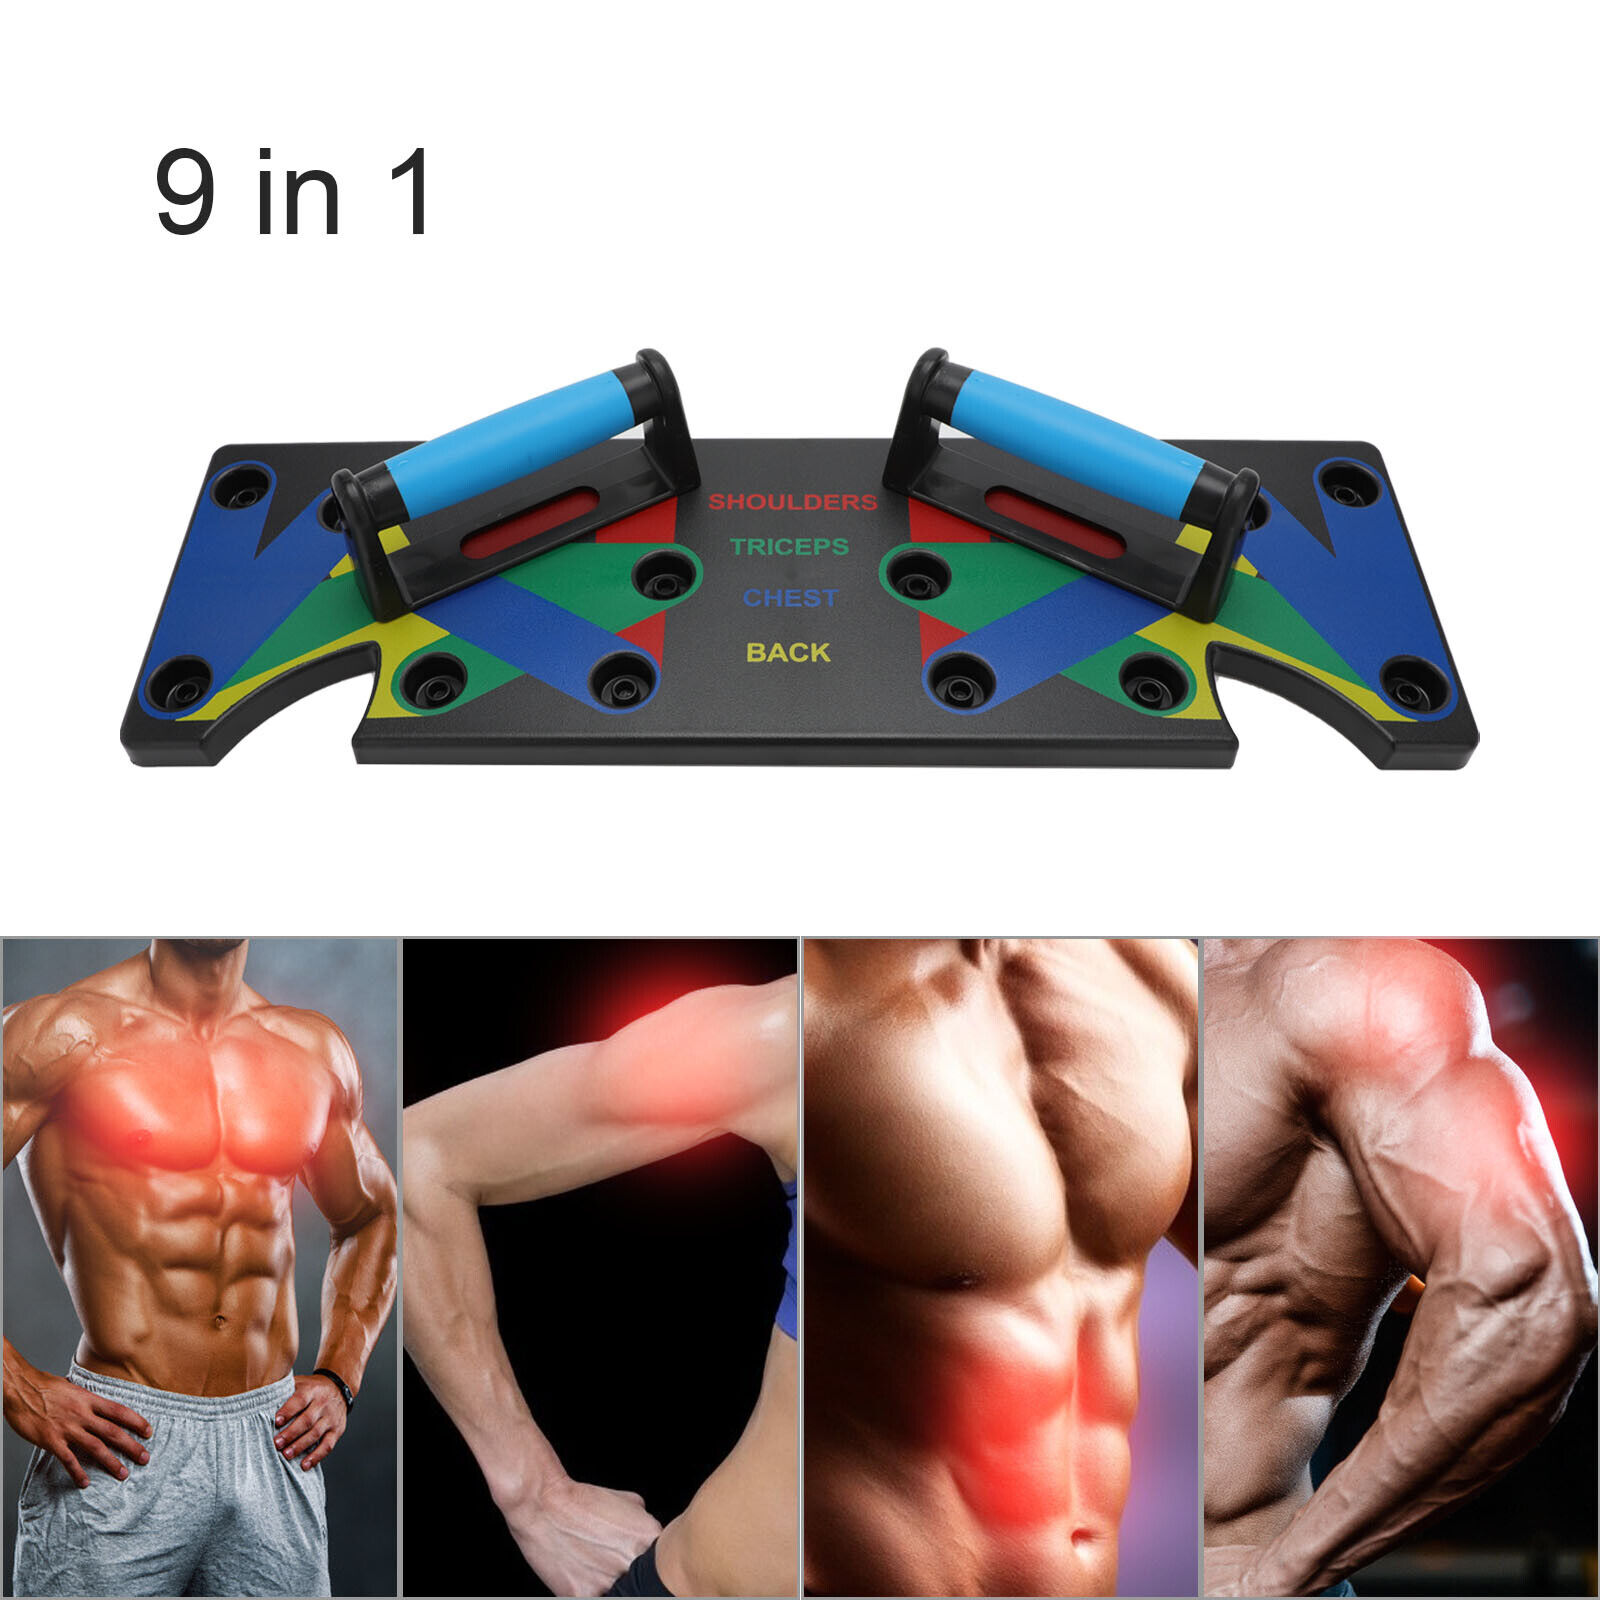 9 in 1 Push Up Rack Board System Fitness Workout Train Gym Exercise Stands